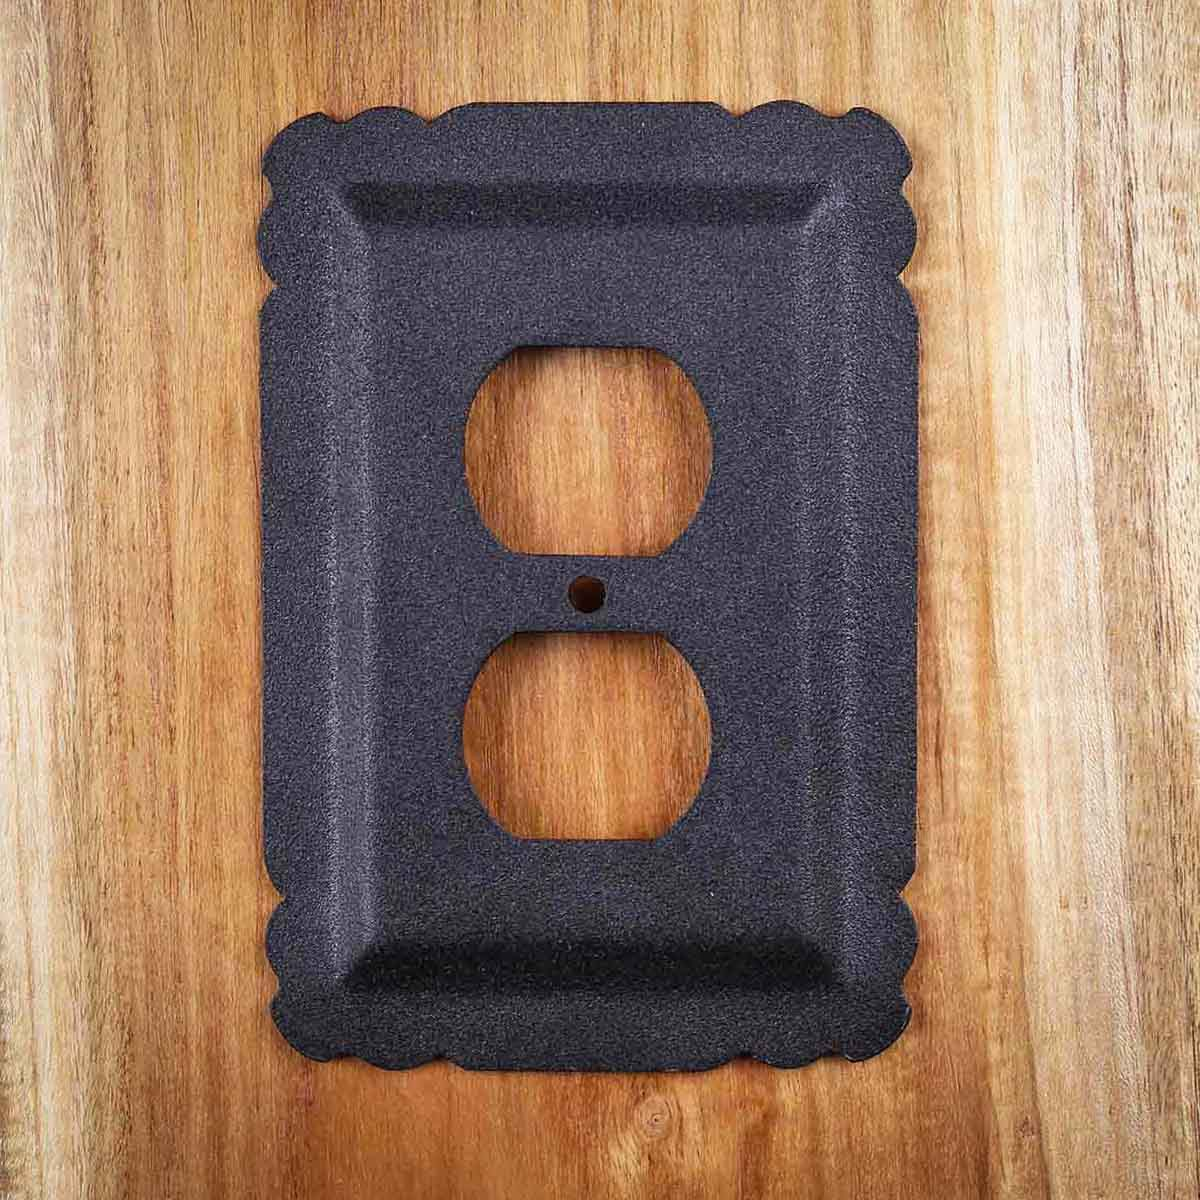 Switchplate Black Steel Outlet RSF Switchplate Covers Black Switchplates And Outlet Covers Decorative Switchplates